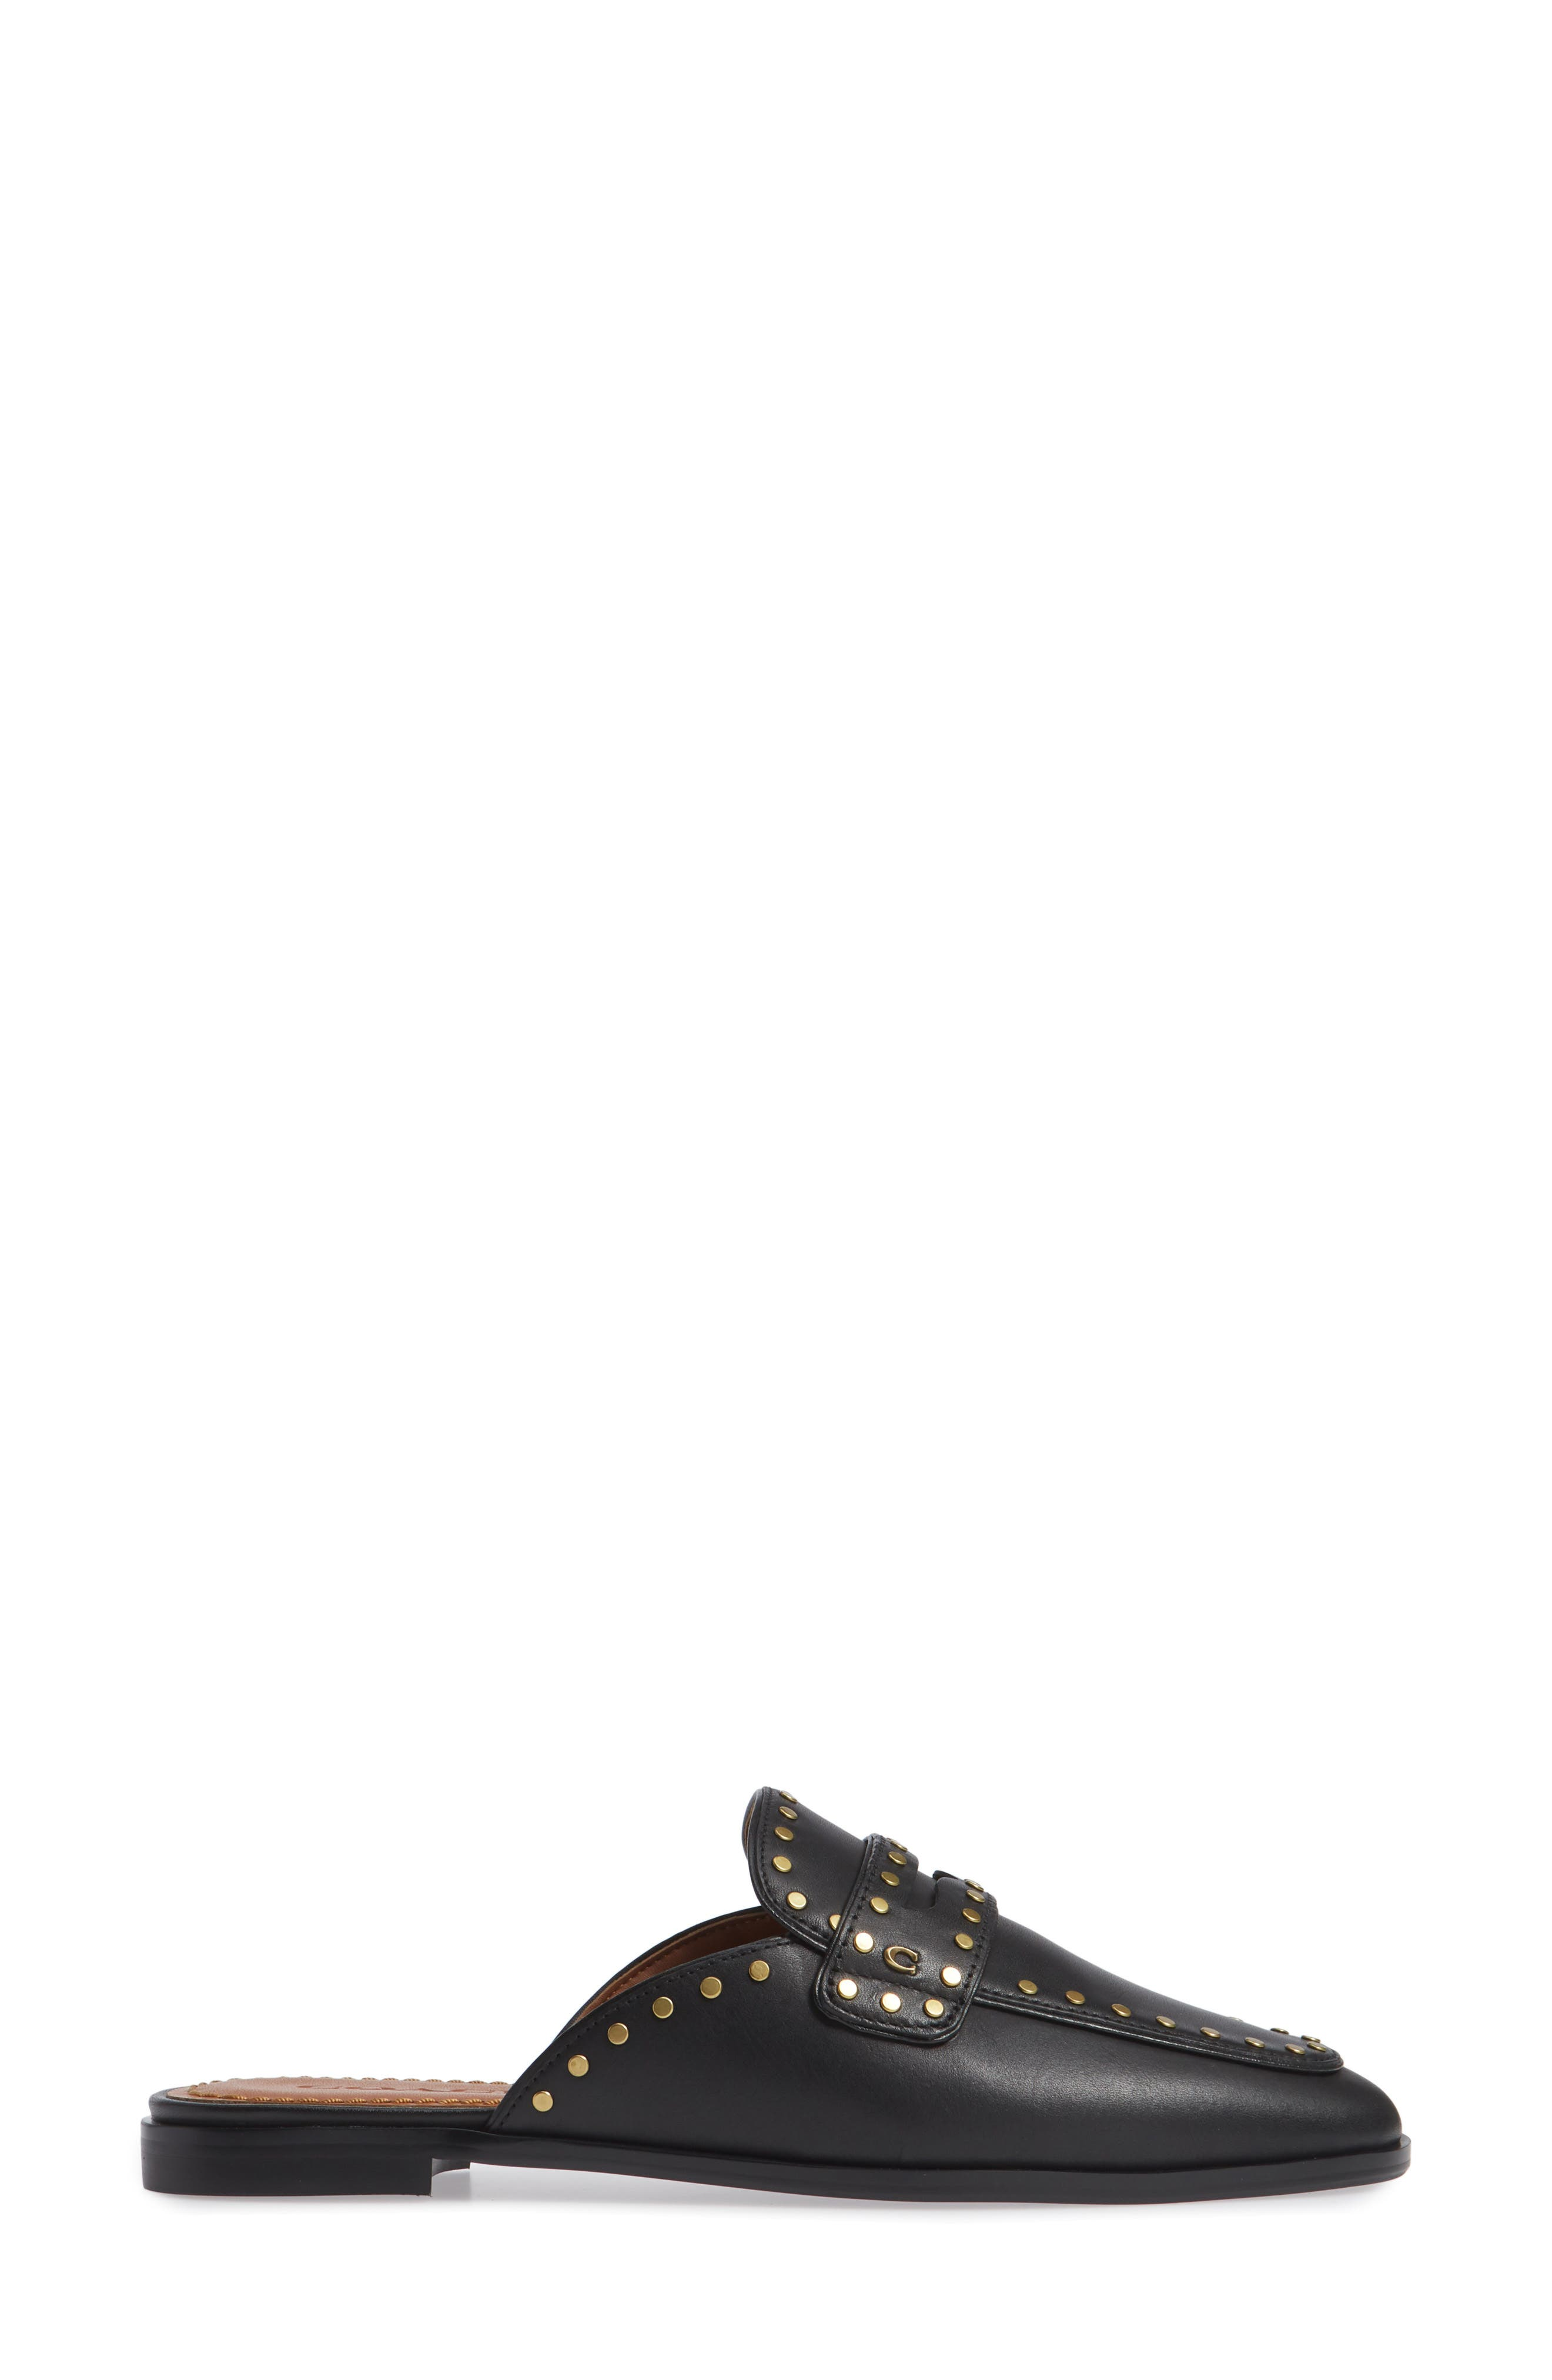 Fiona Loafer Mule,                             Alternate thumbnail 3, color,                             001